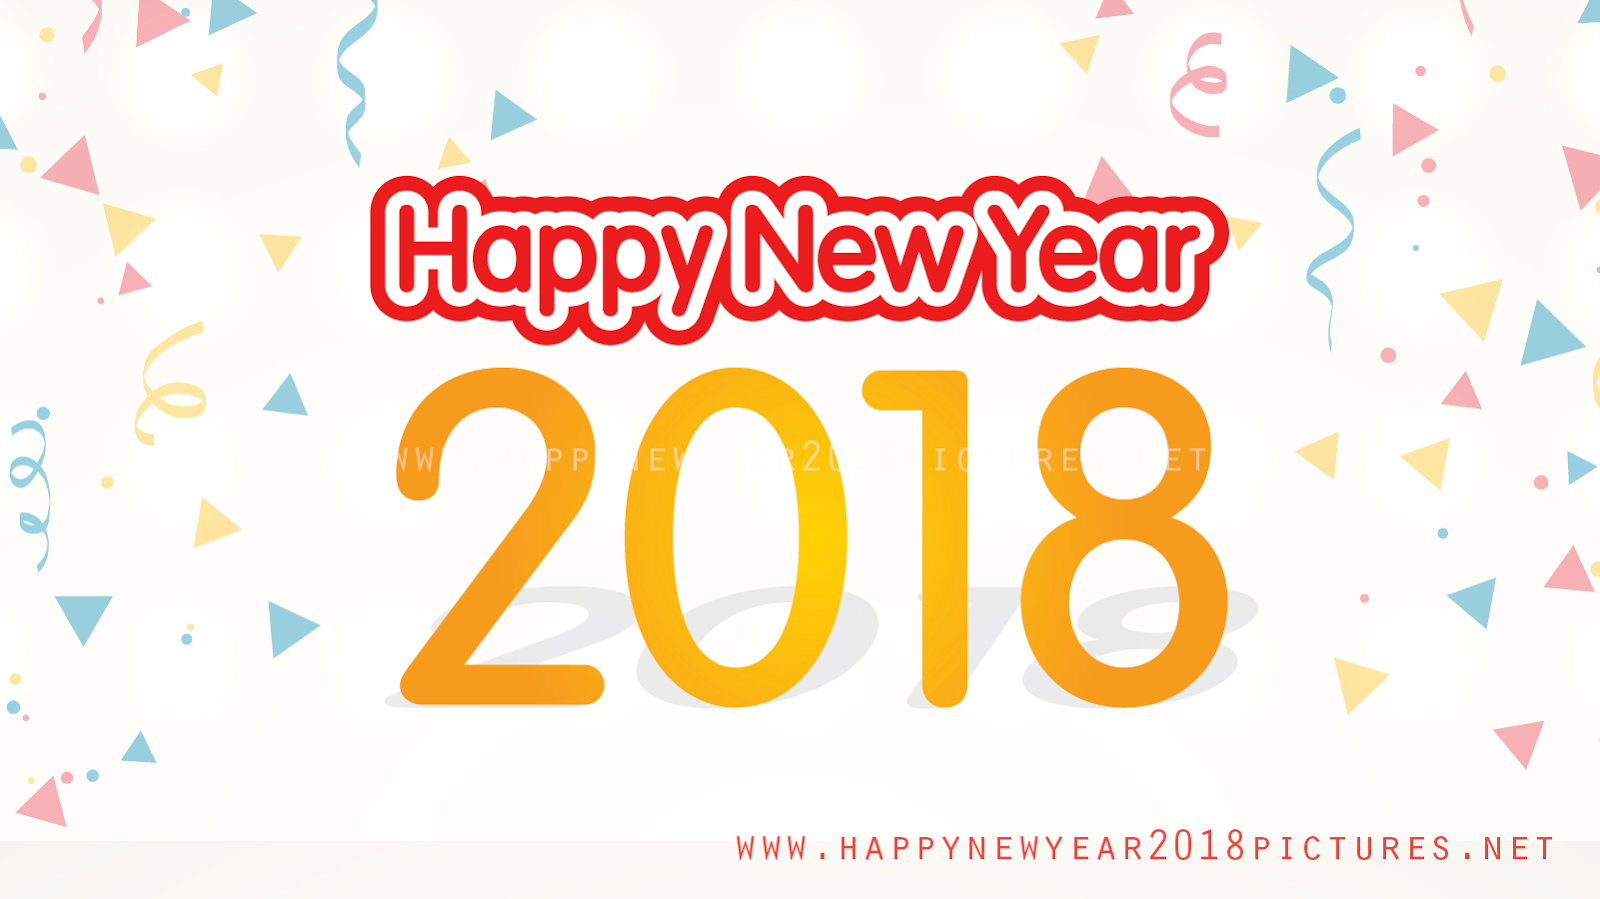 Wishes for Happy New Year 2018 With Quotes, Message, Wishes, Greetings